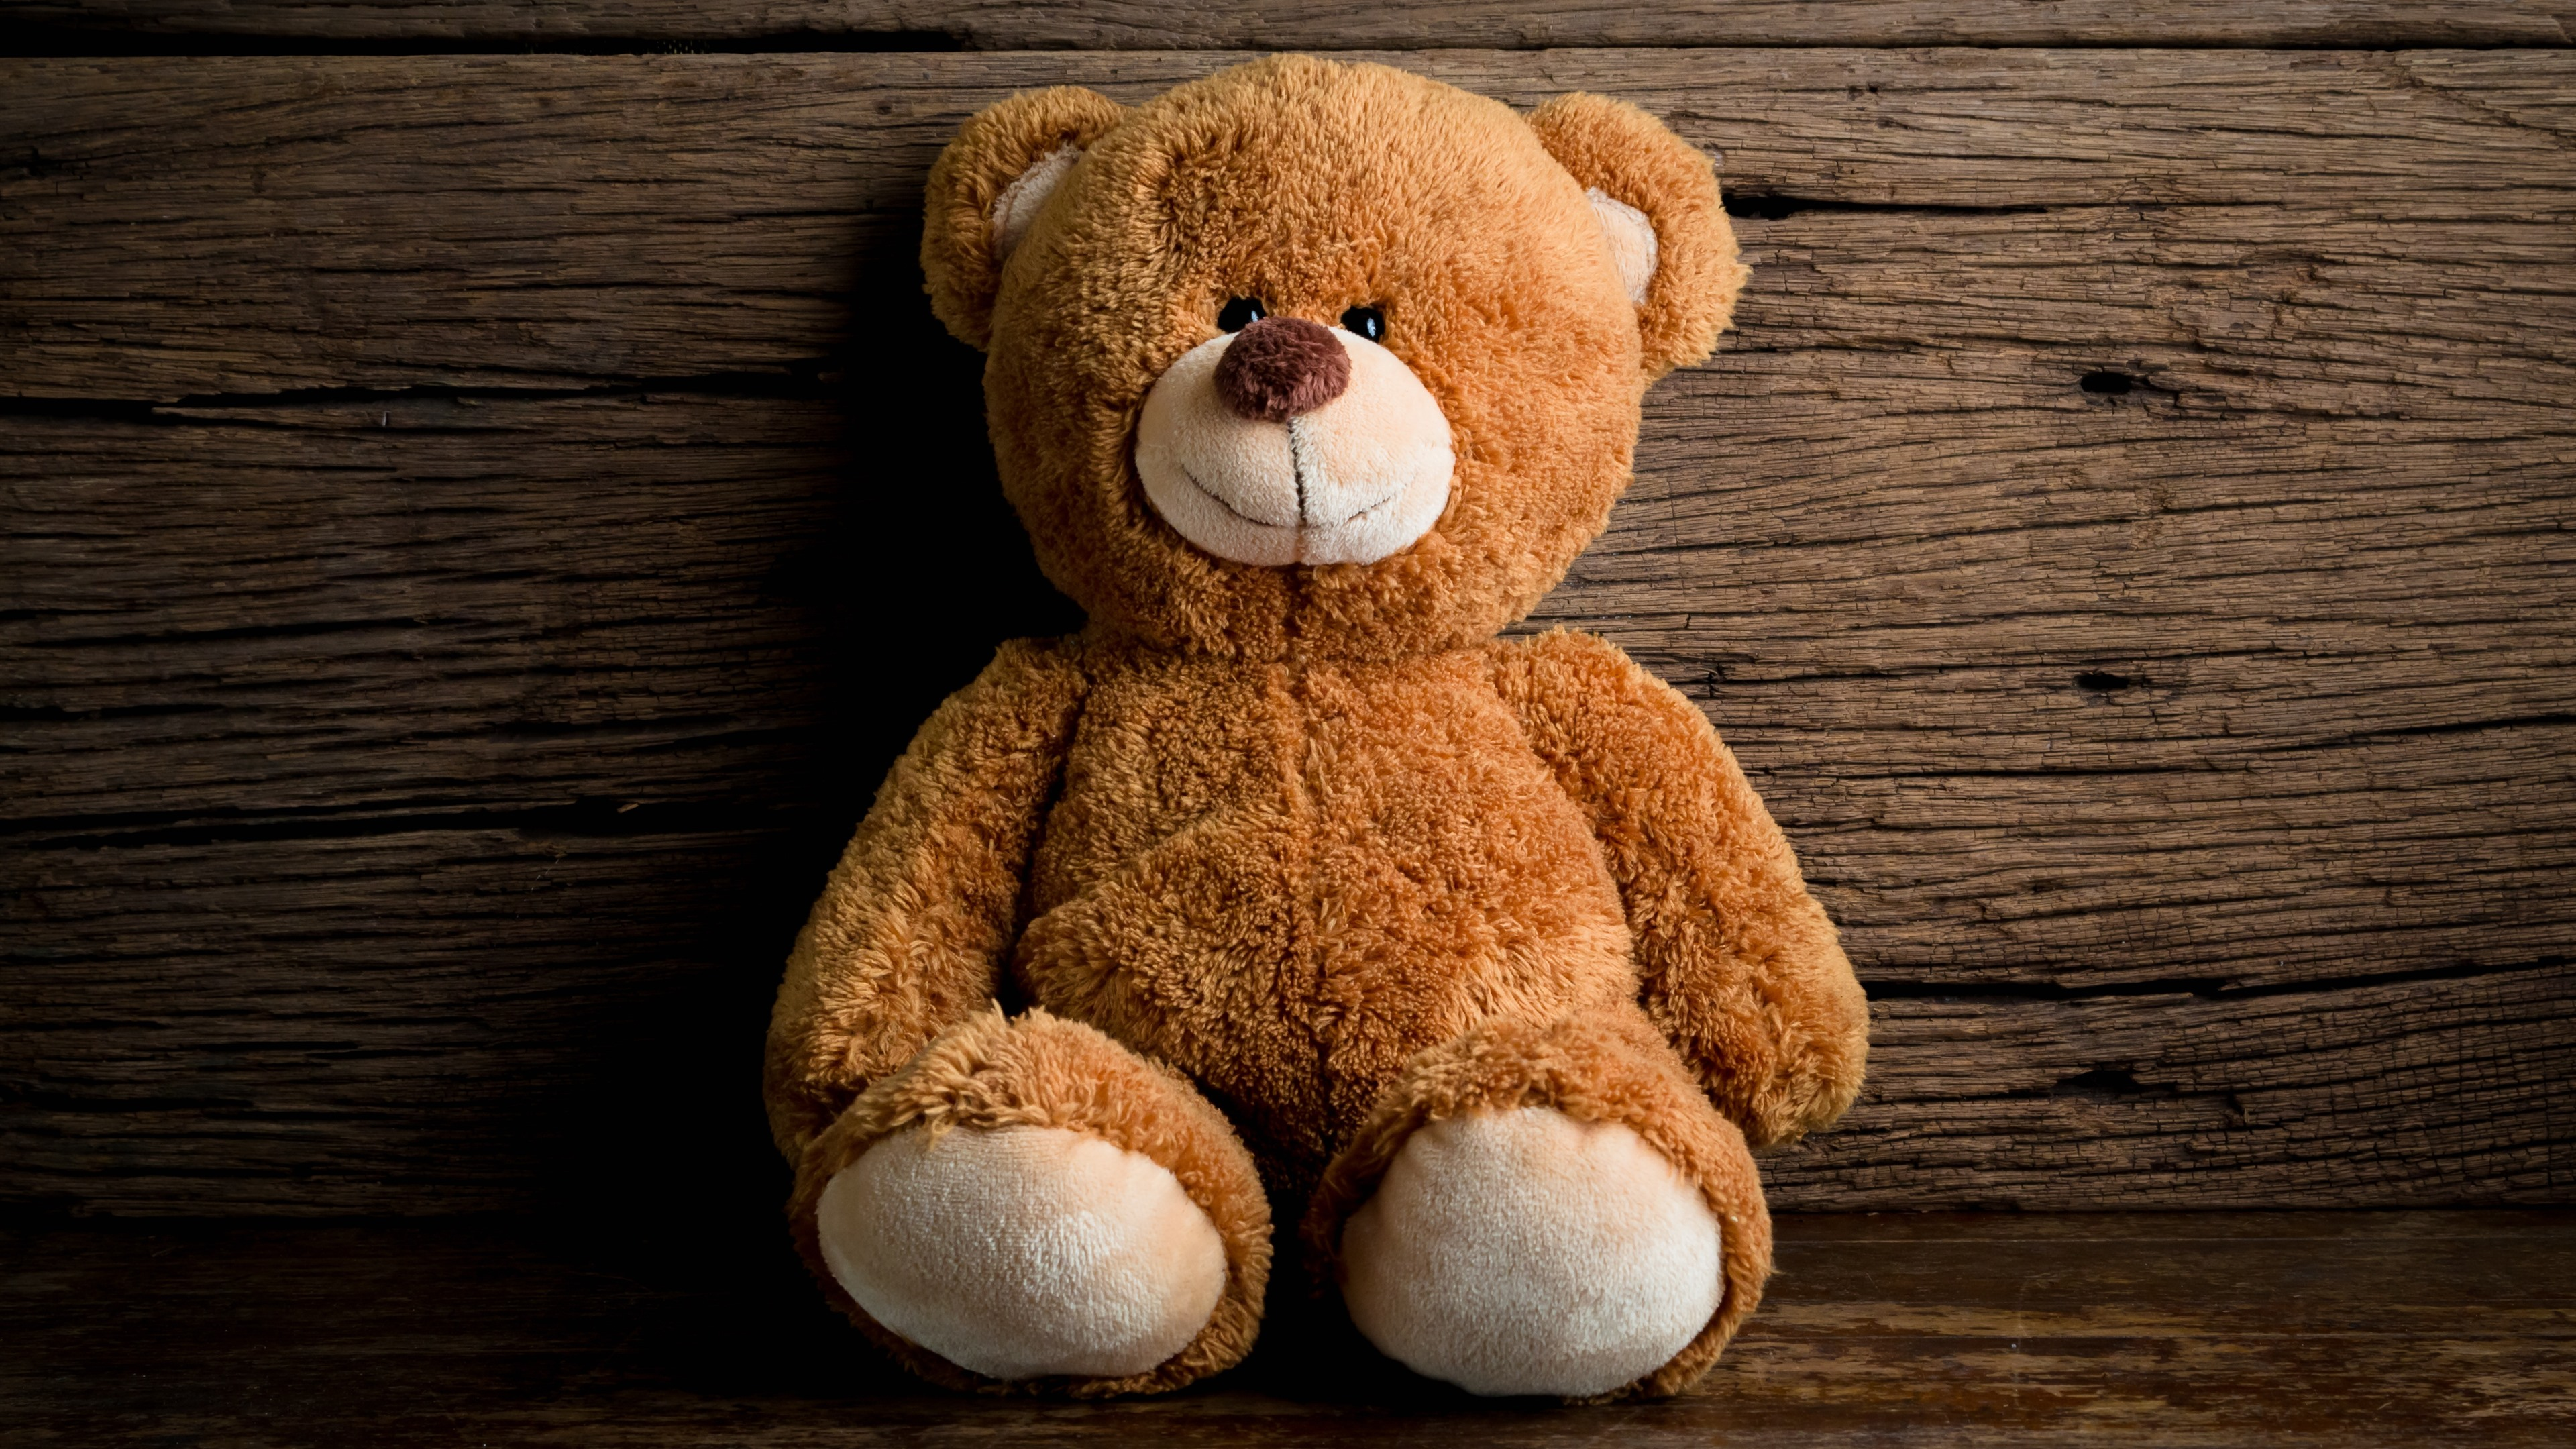 Wallpaper Cute Teddy Bear Toy 5120x2880 Uhd 5k Picture Image